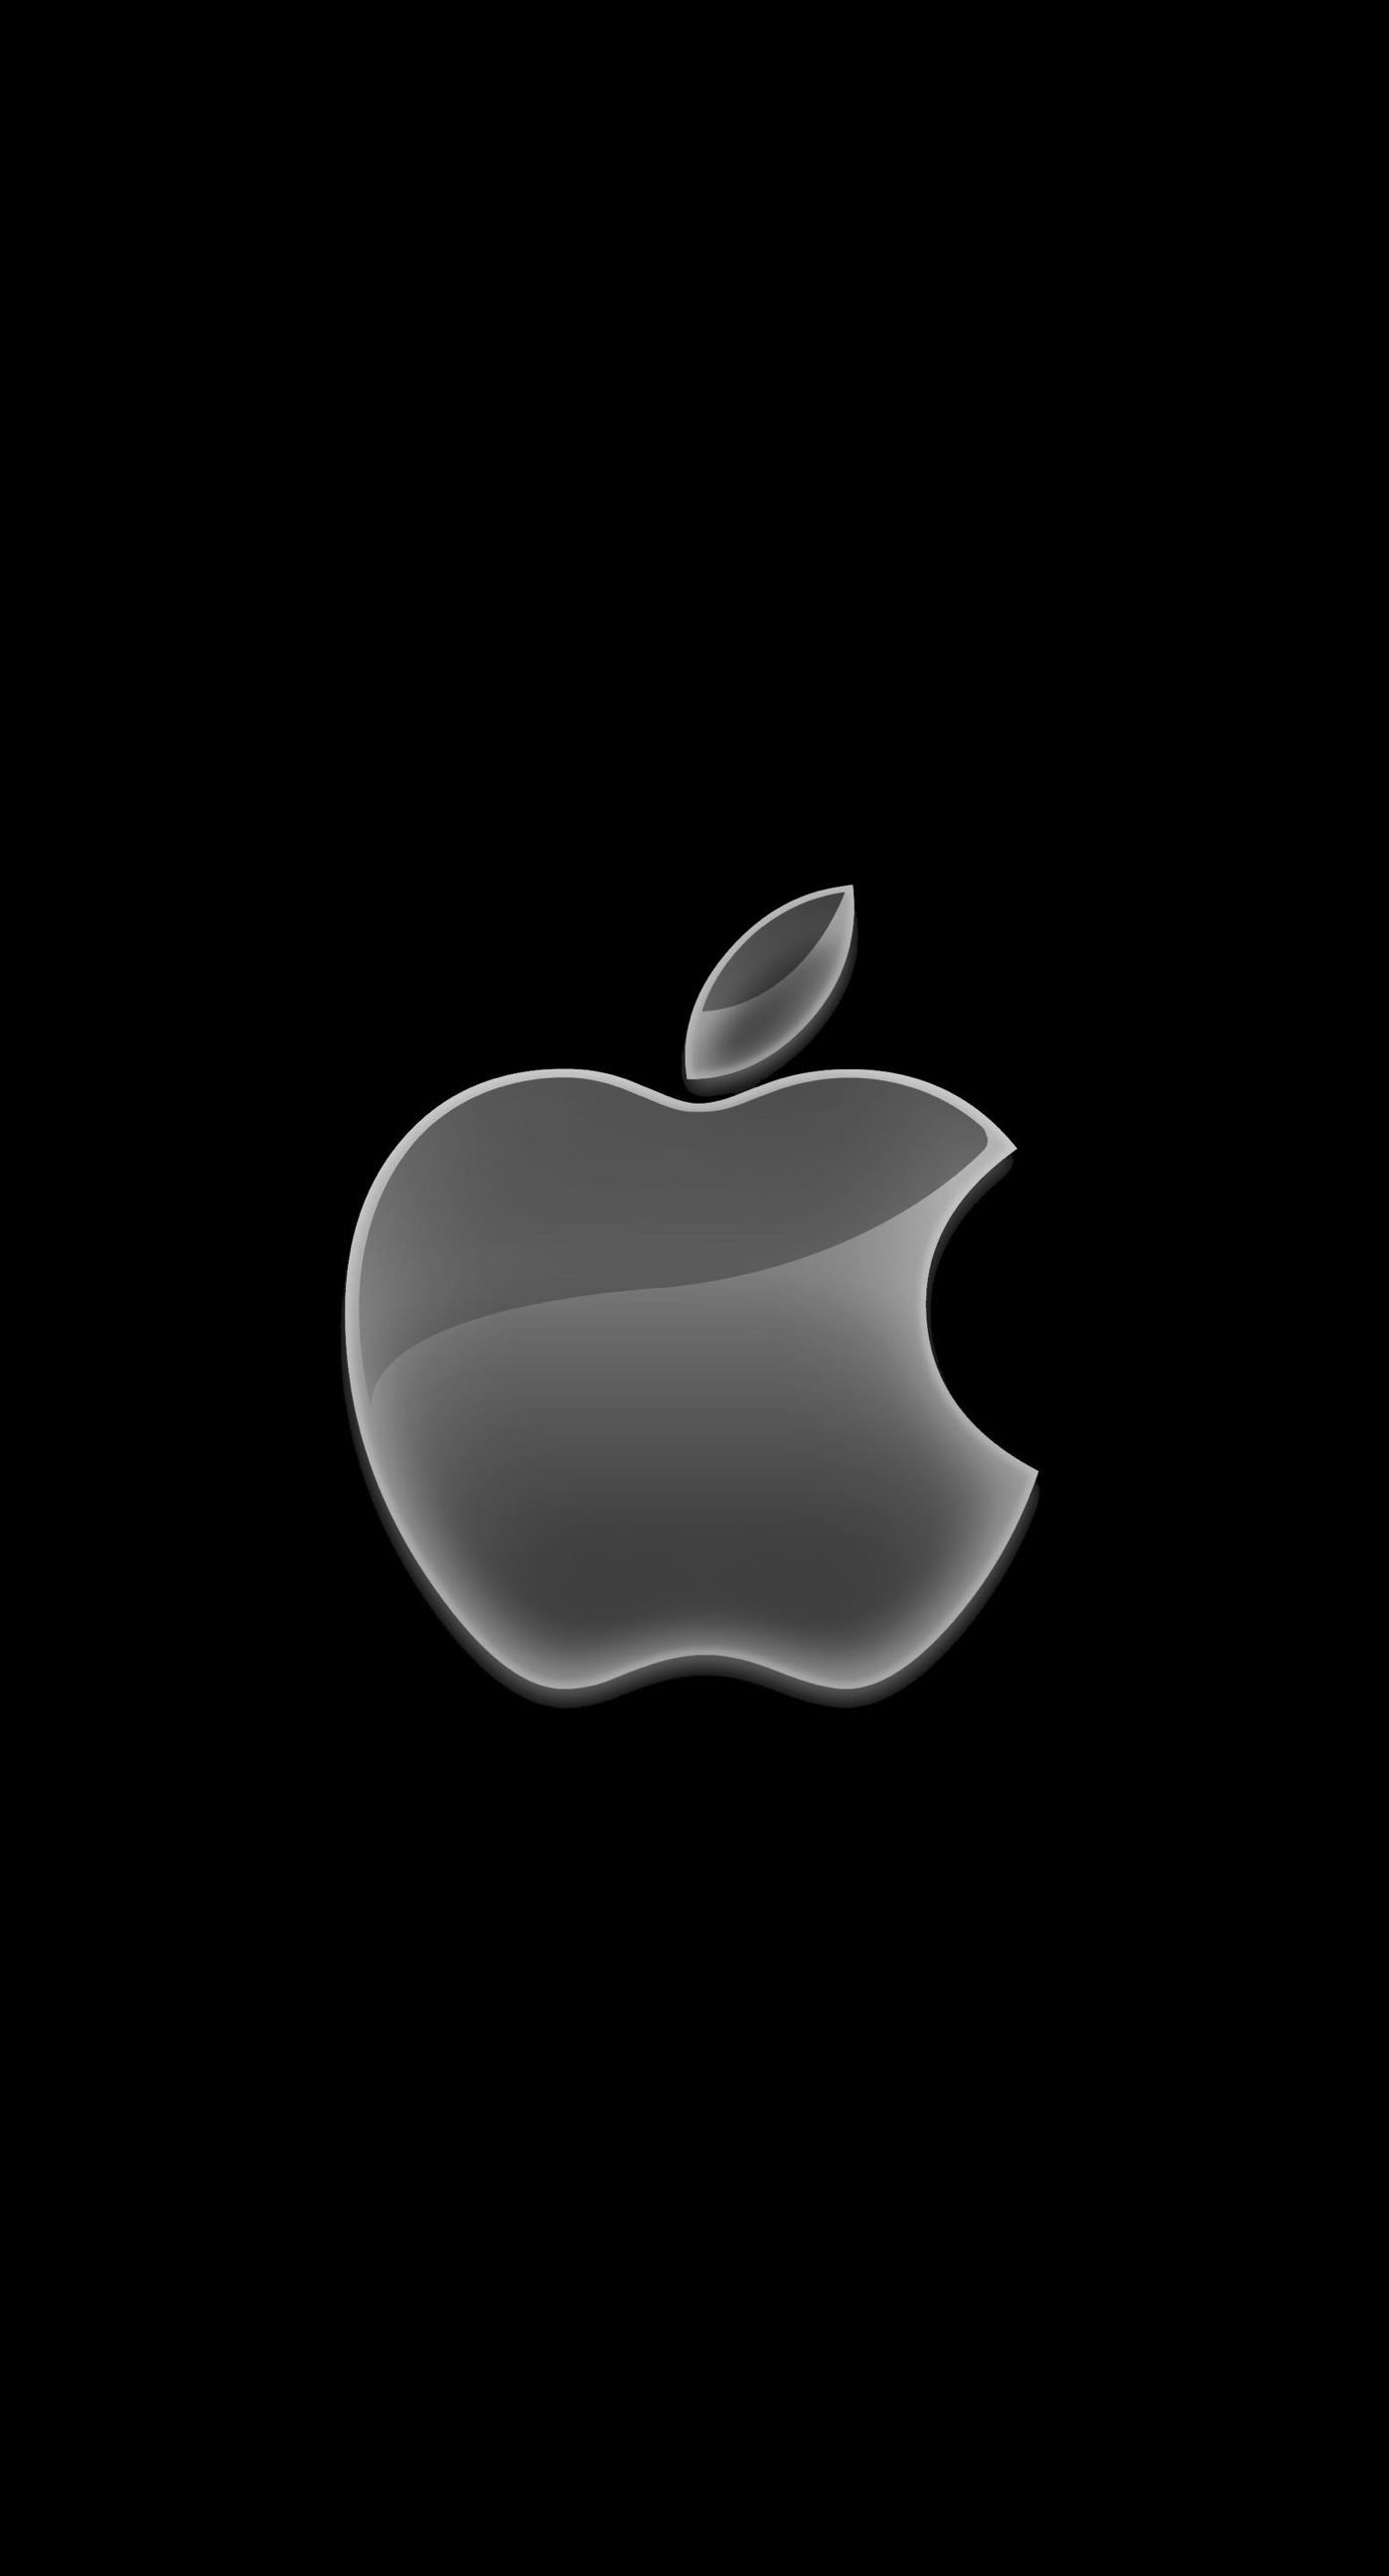 Apple logo black cool iphone7plus - Awesome wallpapers for iphone 7 plus ...